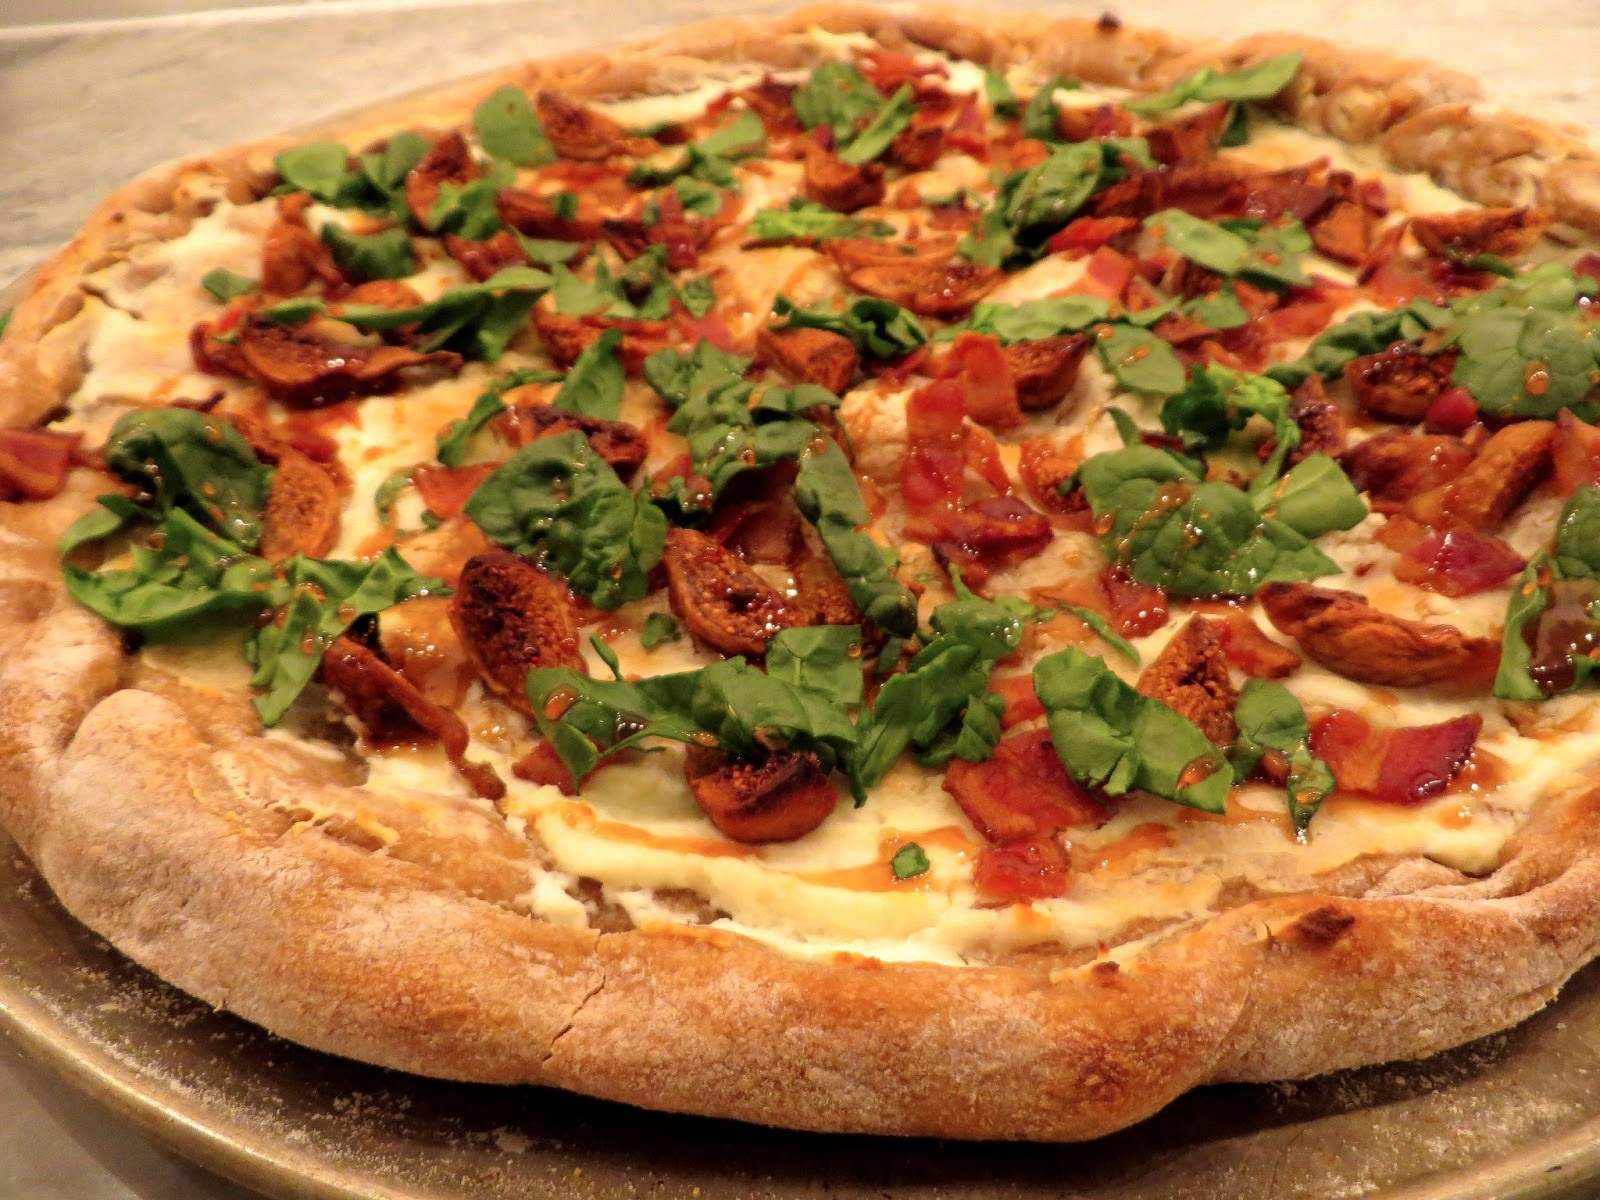 The Wooden Spoon Diaries: Fig, Bacon & Goat Cheese Pizza